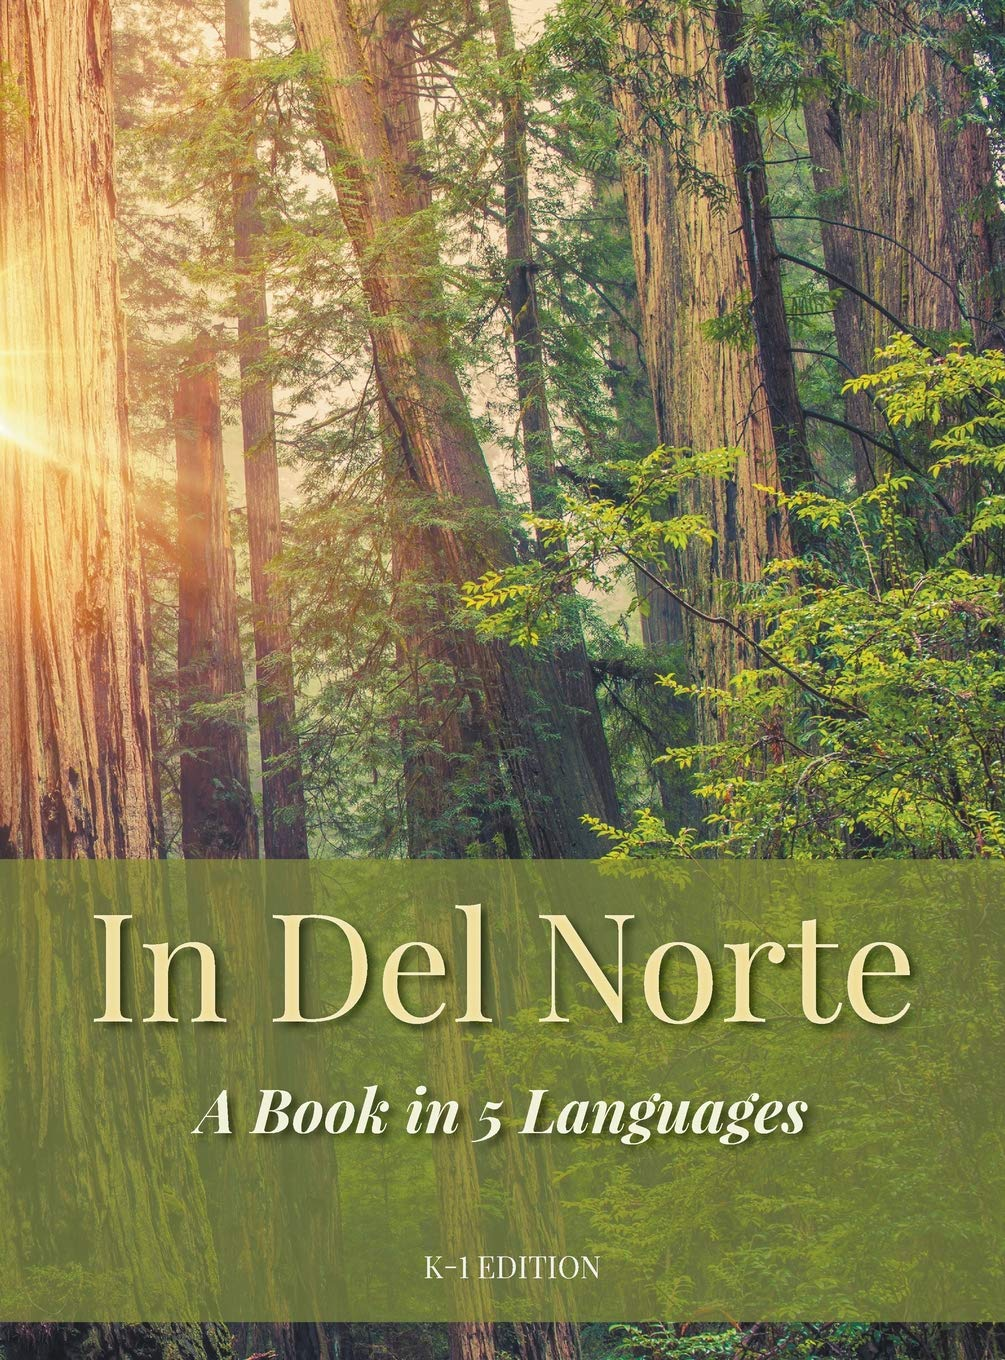 In del Norte: A Book in 5 Languages by Booklocker.com